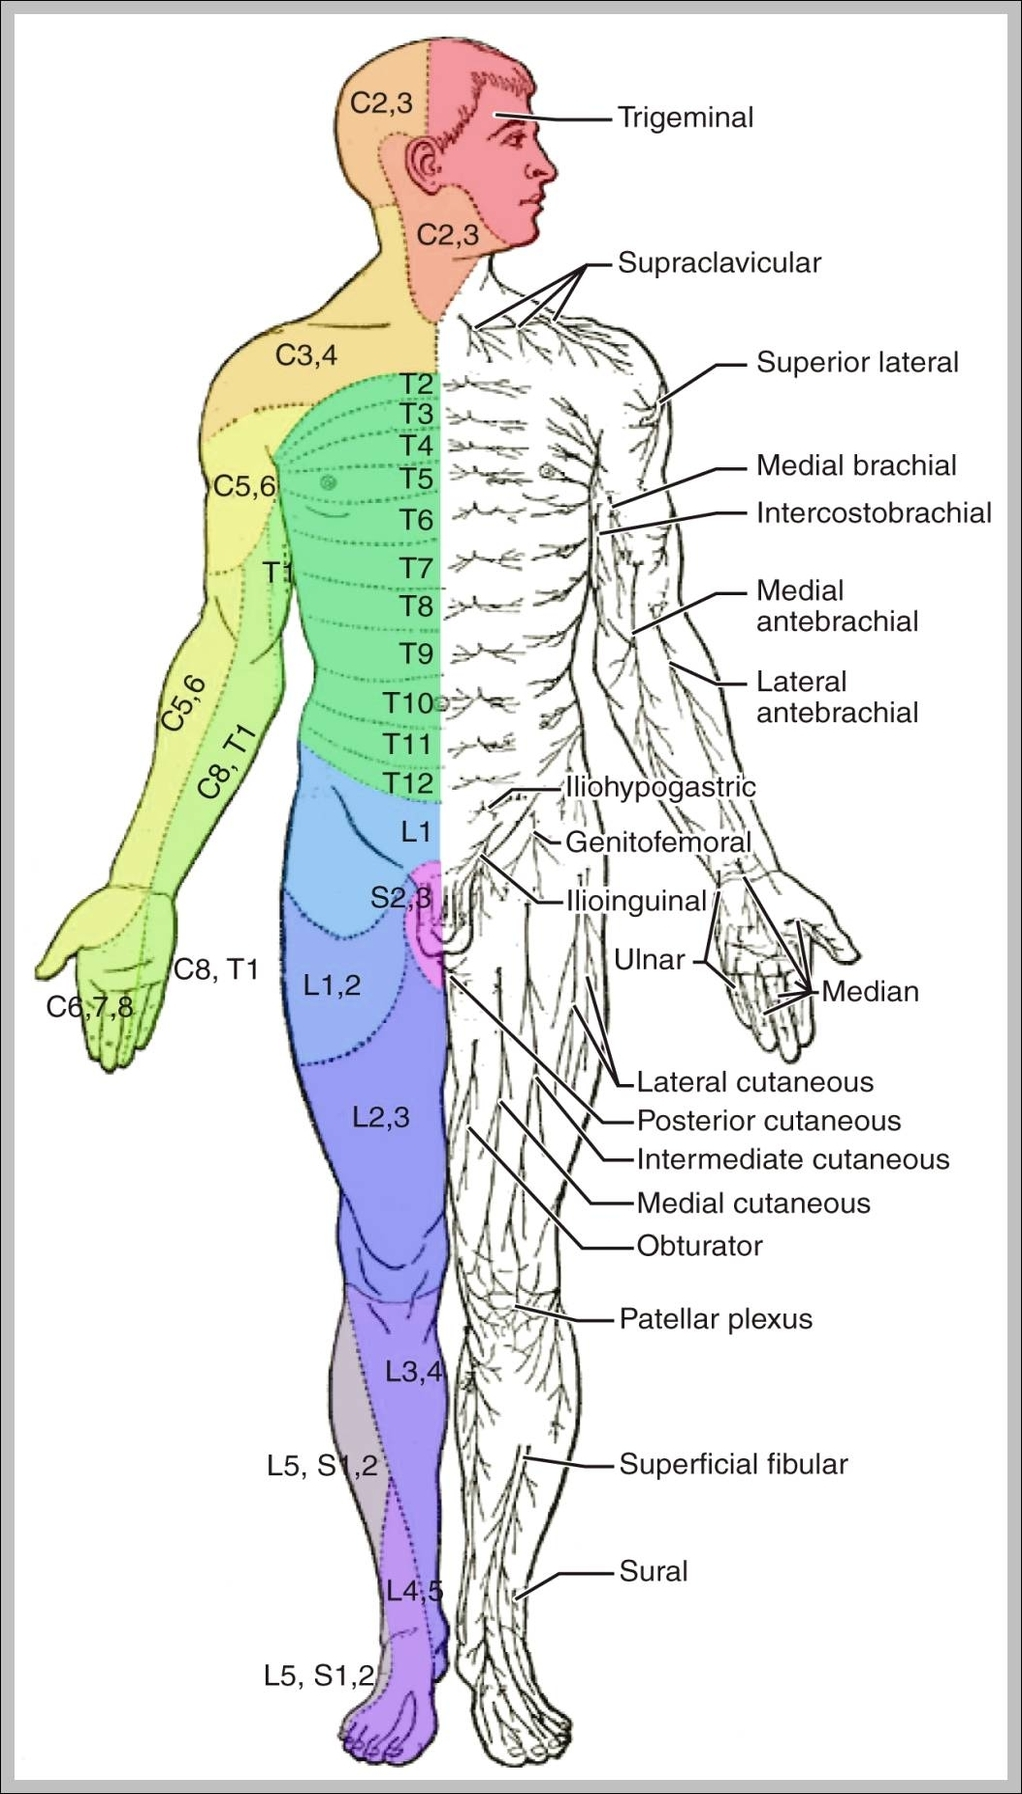 Muscle diagram anatomy system human body anatomy diagram and labeled muscle diagram 10241878 diagram labeled muscle diagram 10241878 chart human anatomy diagrams and charts explained ccuart Choice Image